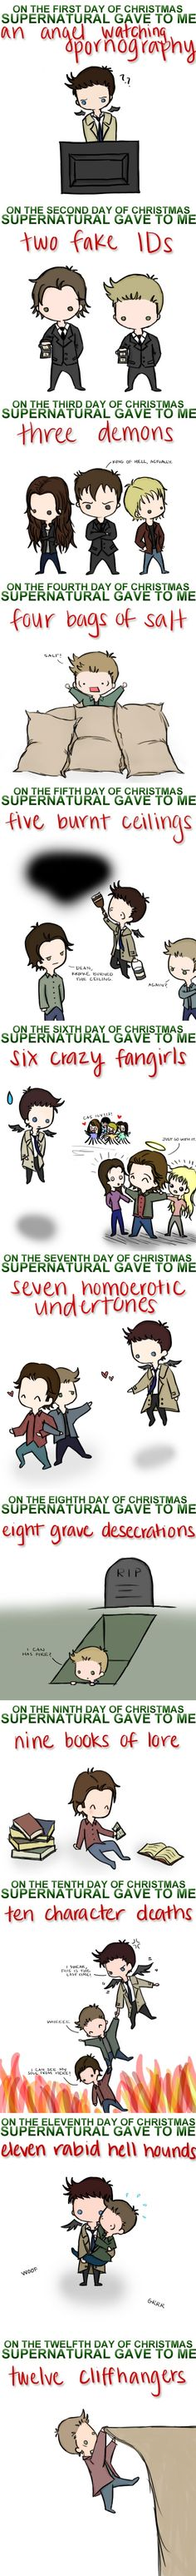 "Twelve Days of Supernatural Christmas. I love the drawings that go with it. Especially the 10 character deaths one! Lol ""I can see my soul from here!"""